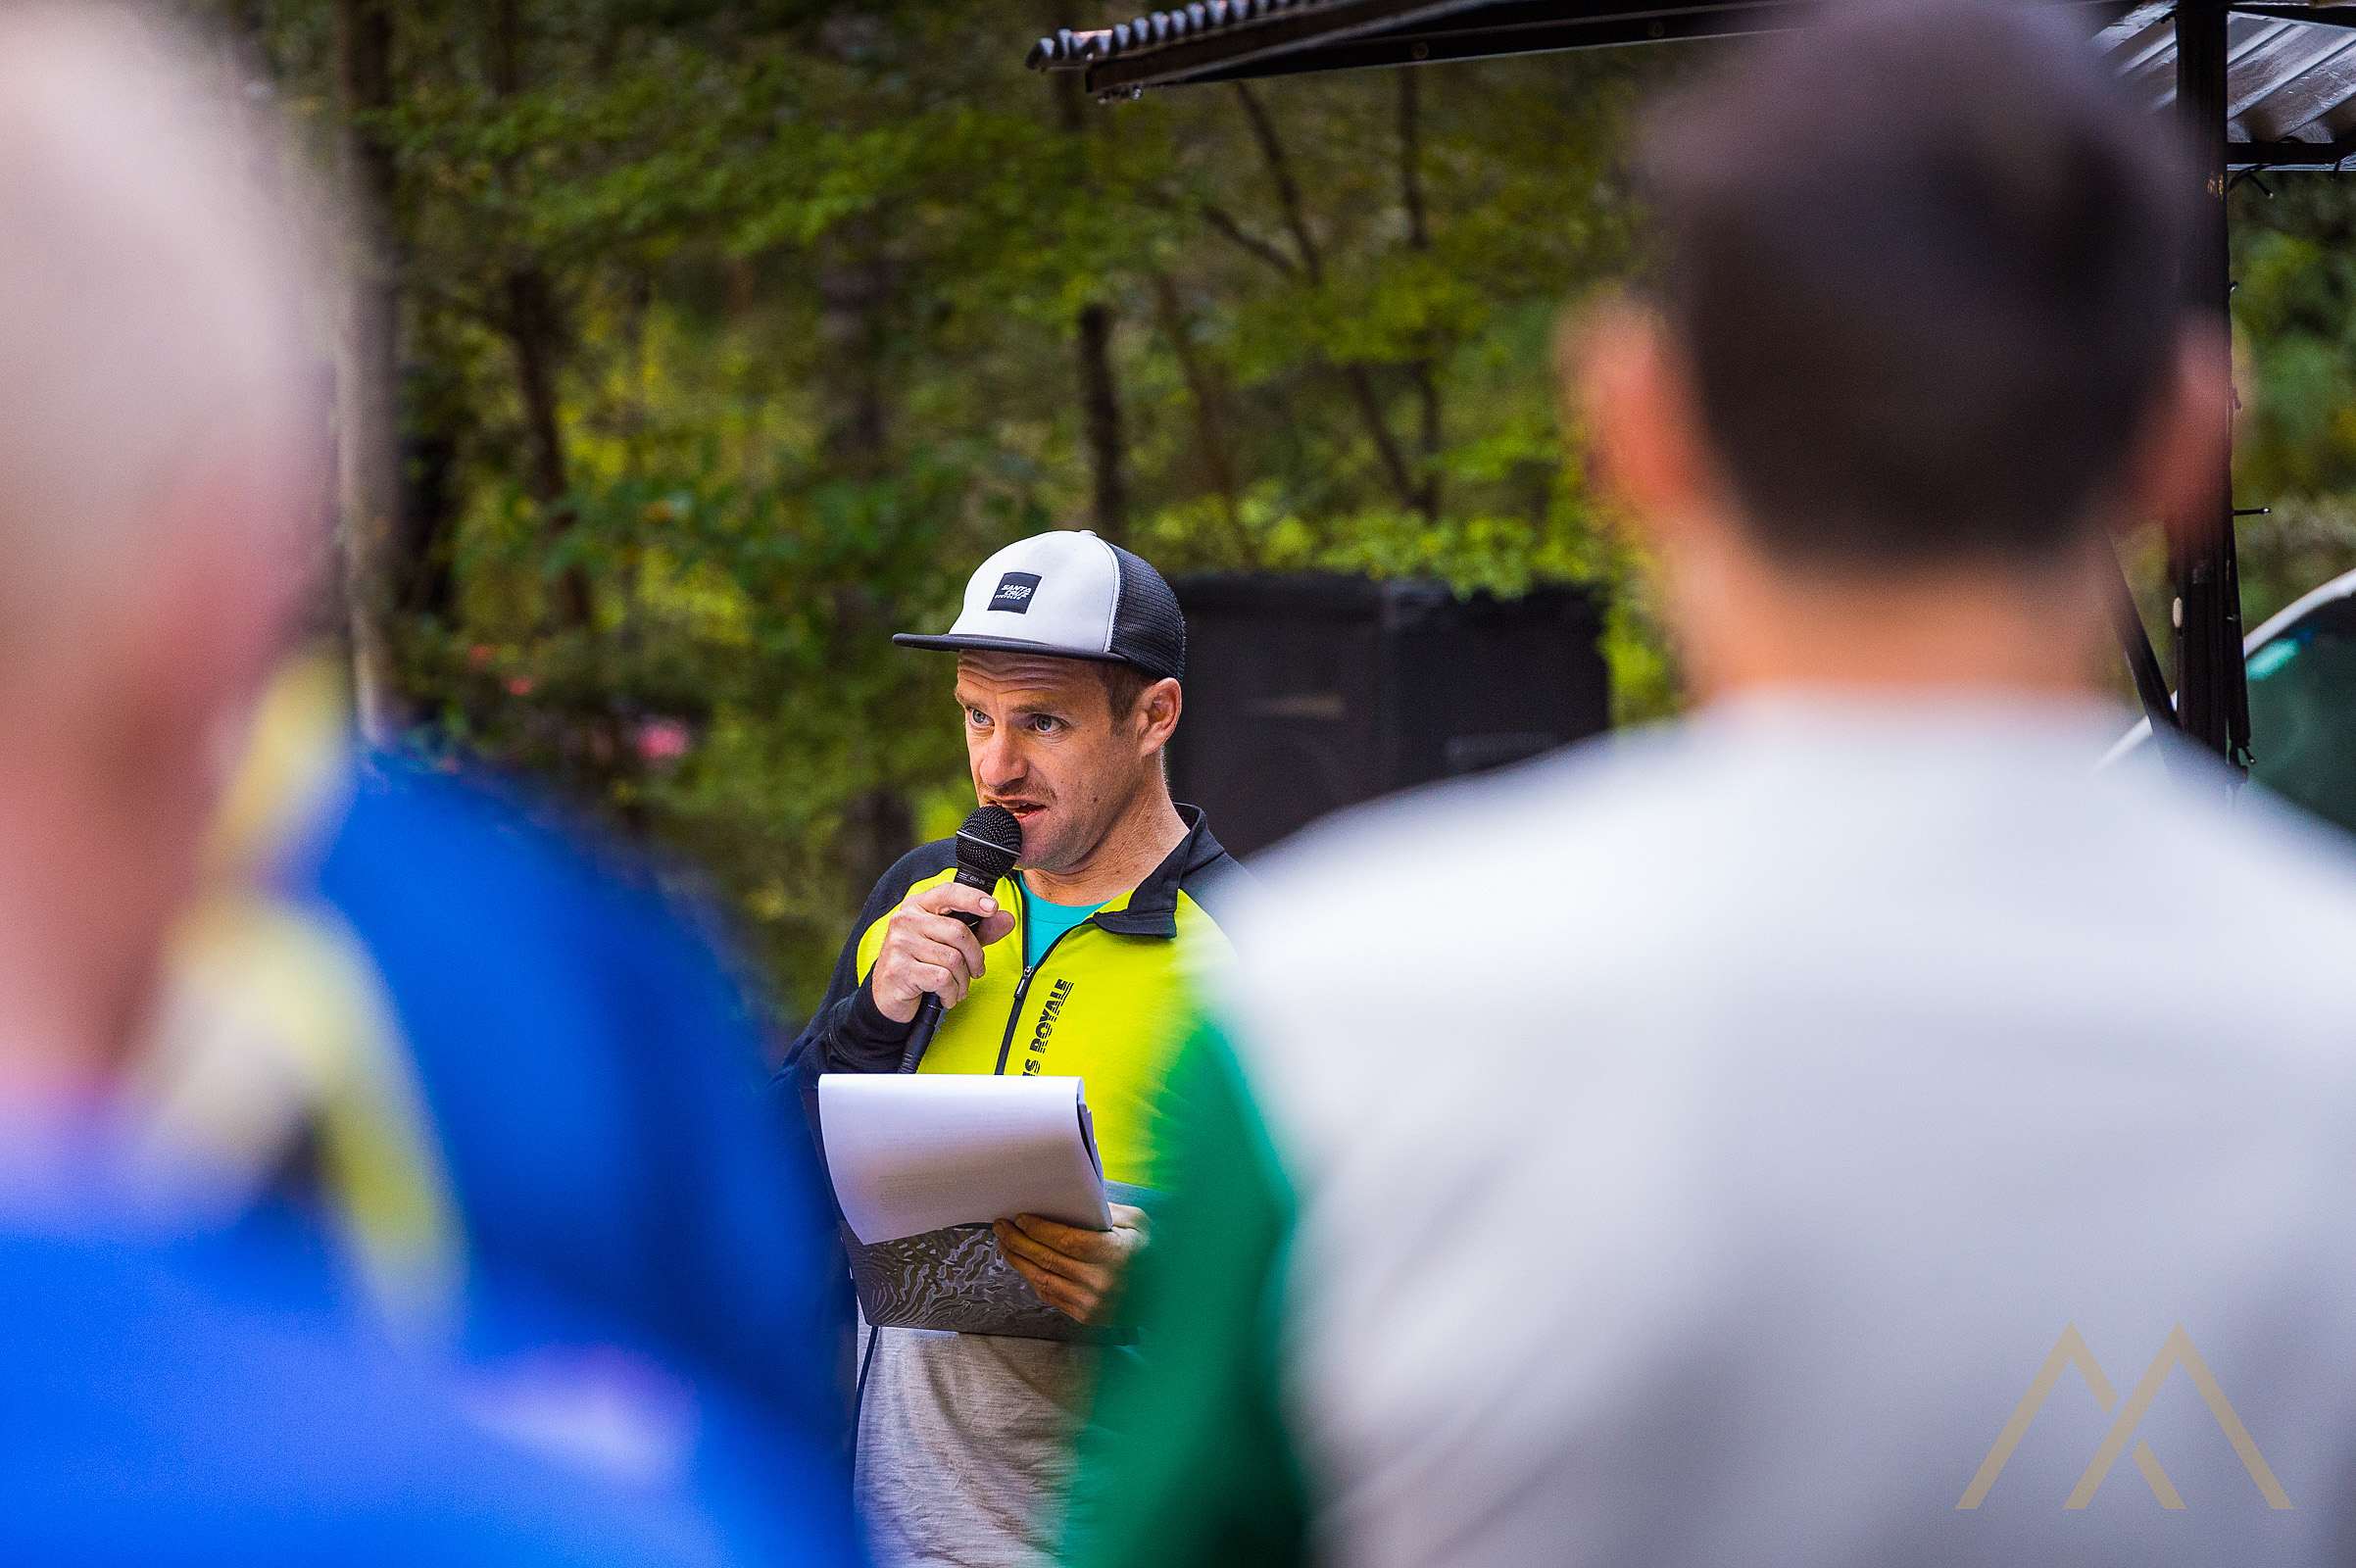 Race Director, Nick Crocker, didn't need to tell riders twice to get on the shuttles!Image: Digby Shaw